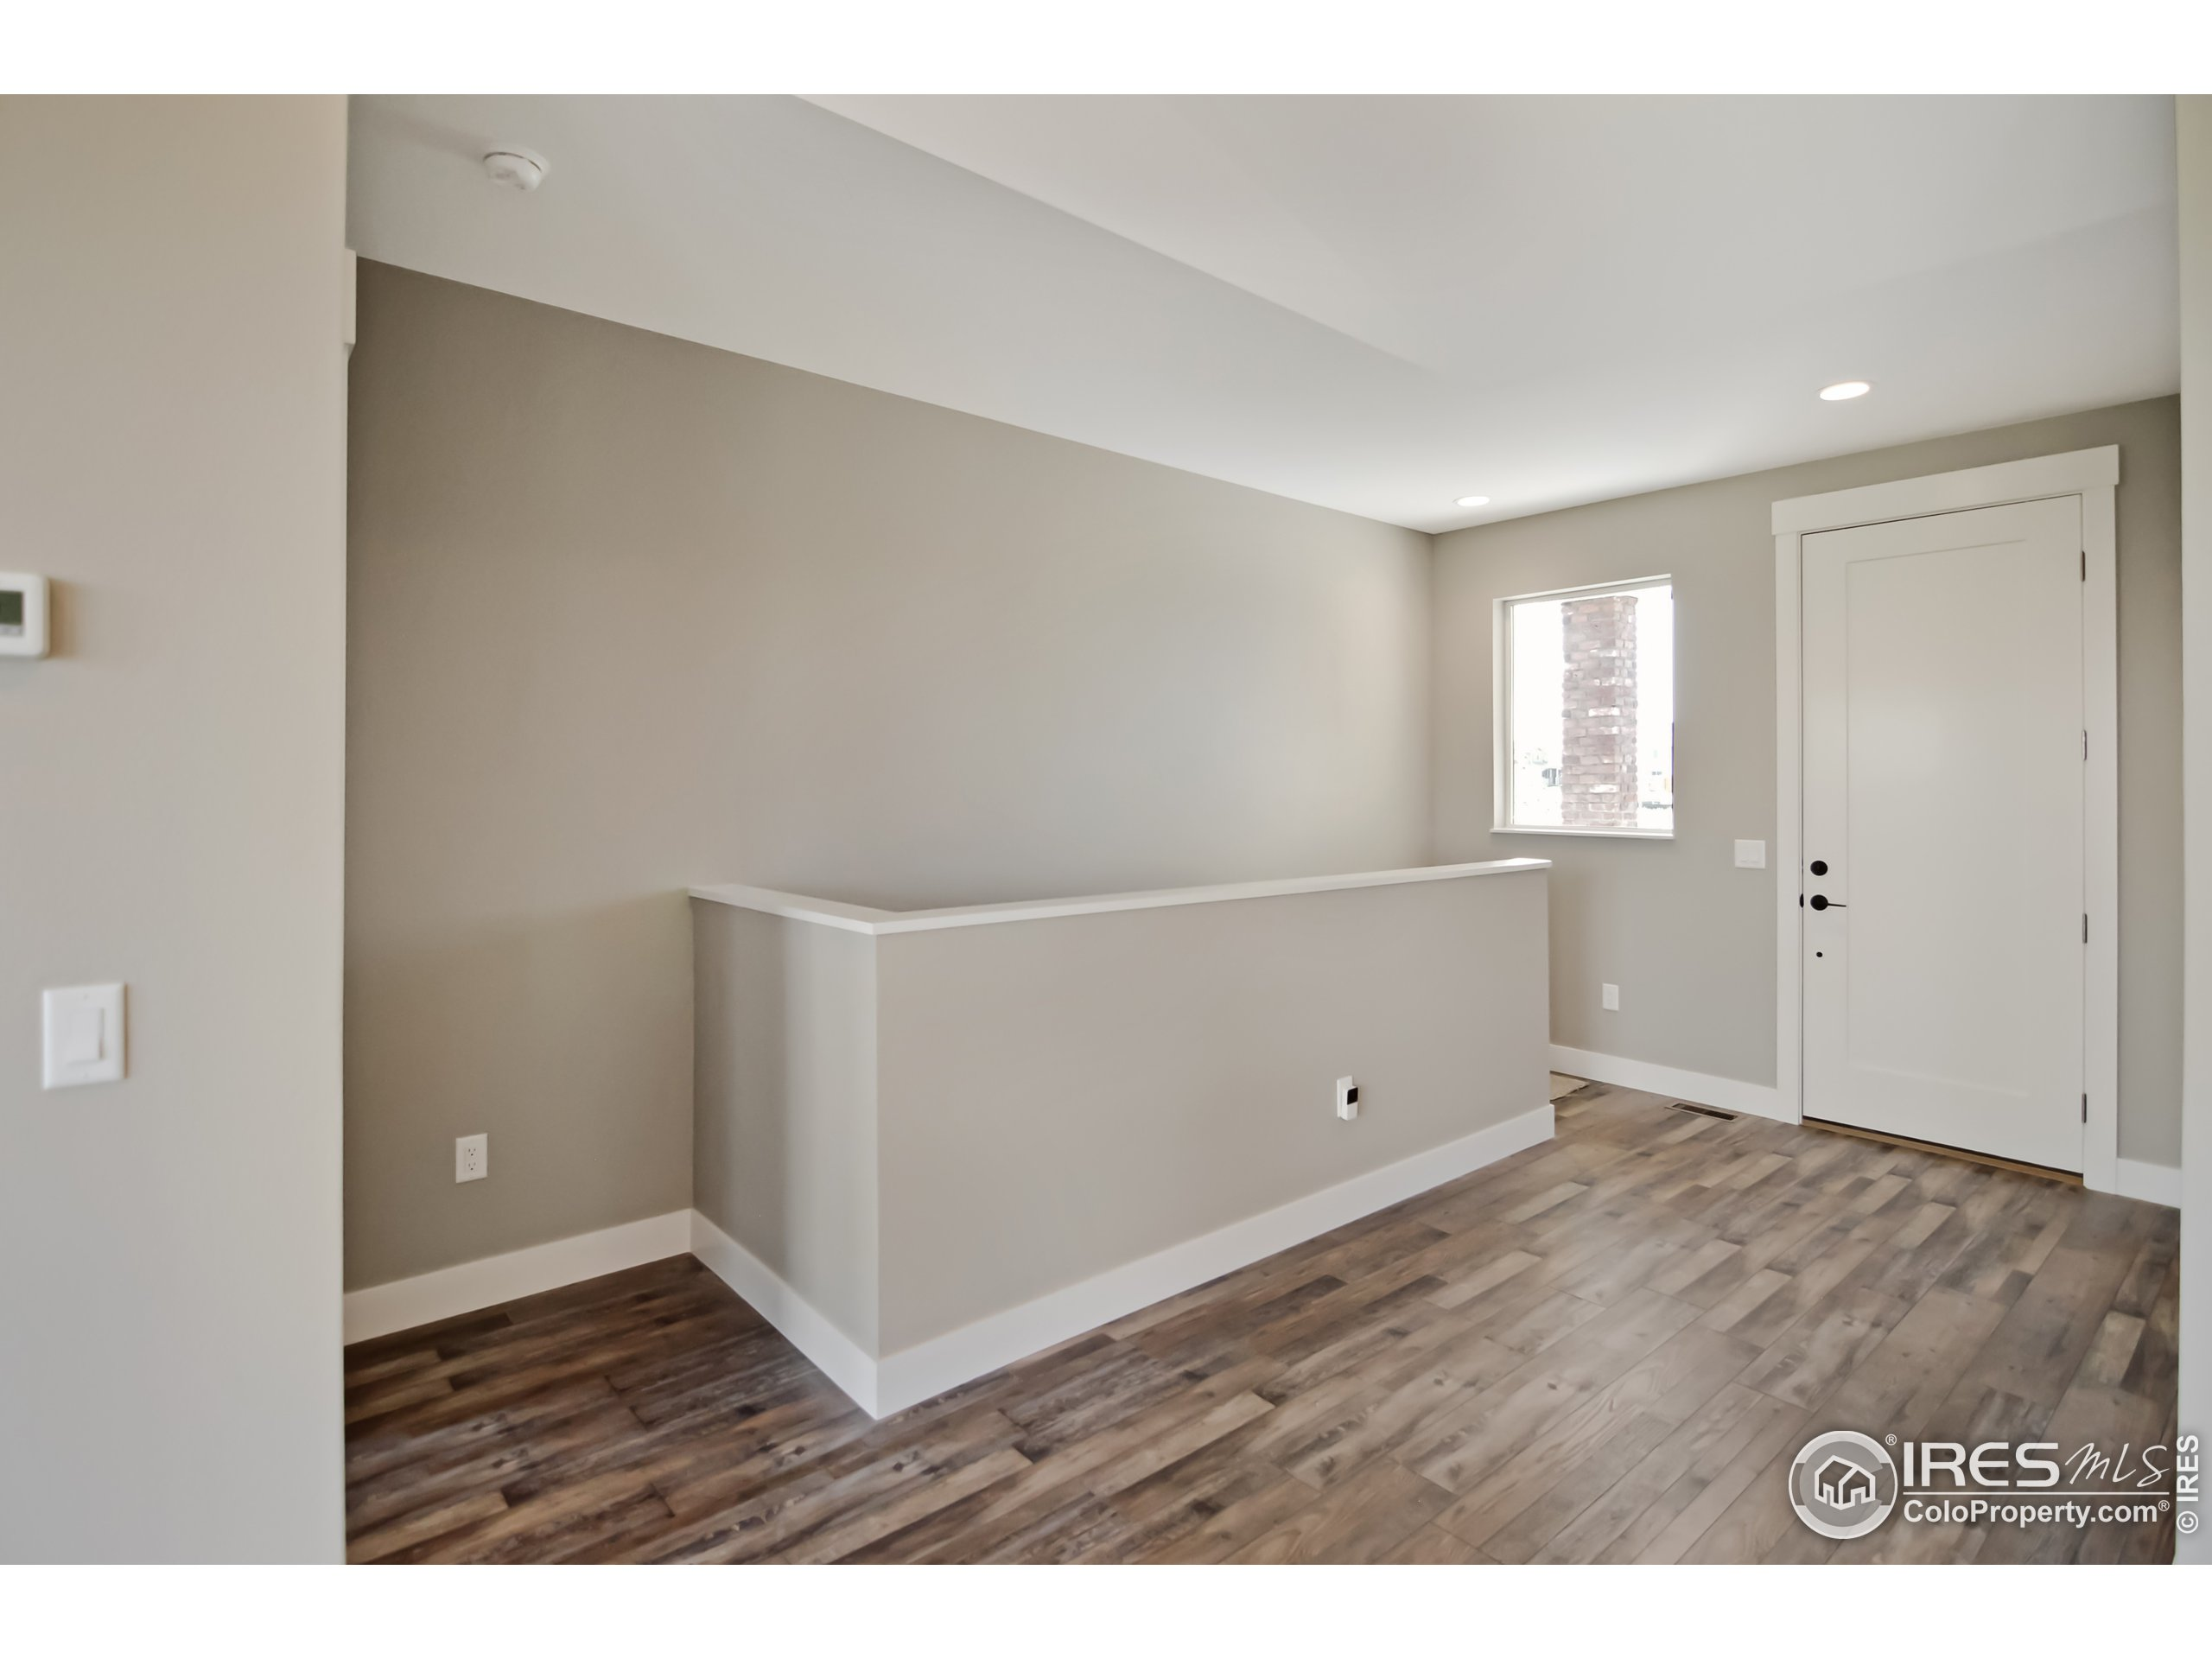 Previously built home showing standard features, new build to be similar.